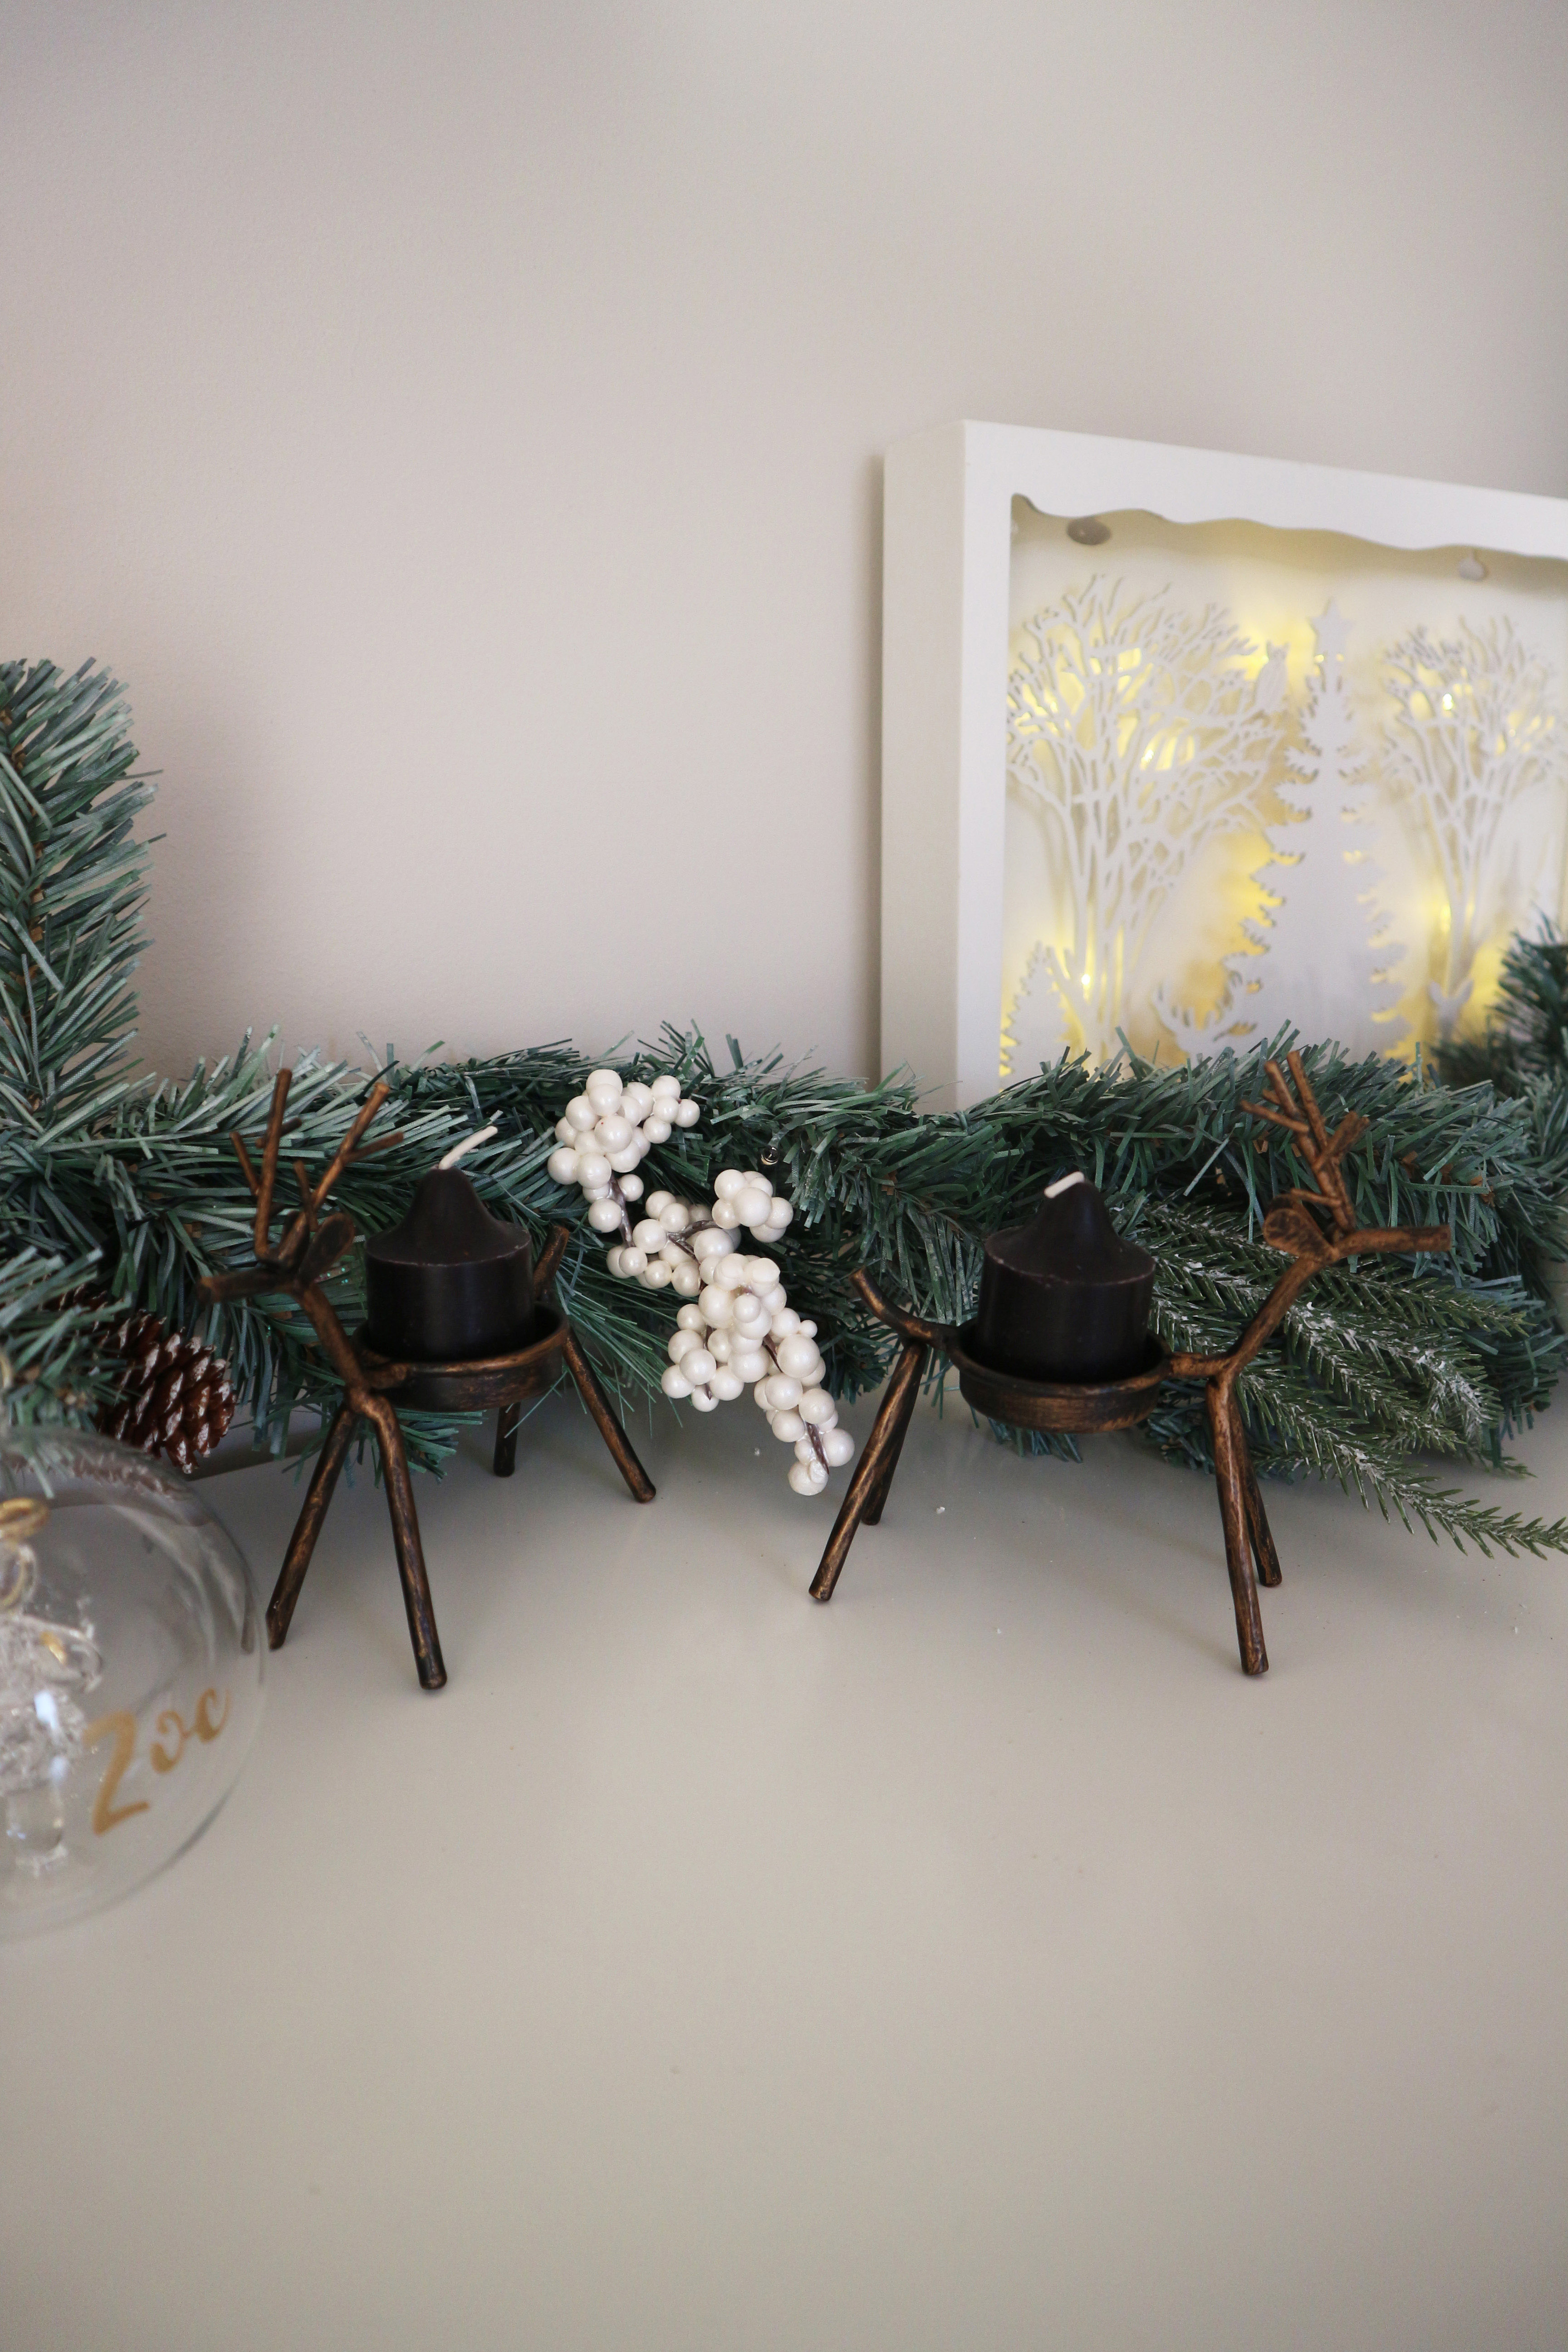 Decorating your bedroom for Christmas